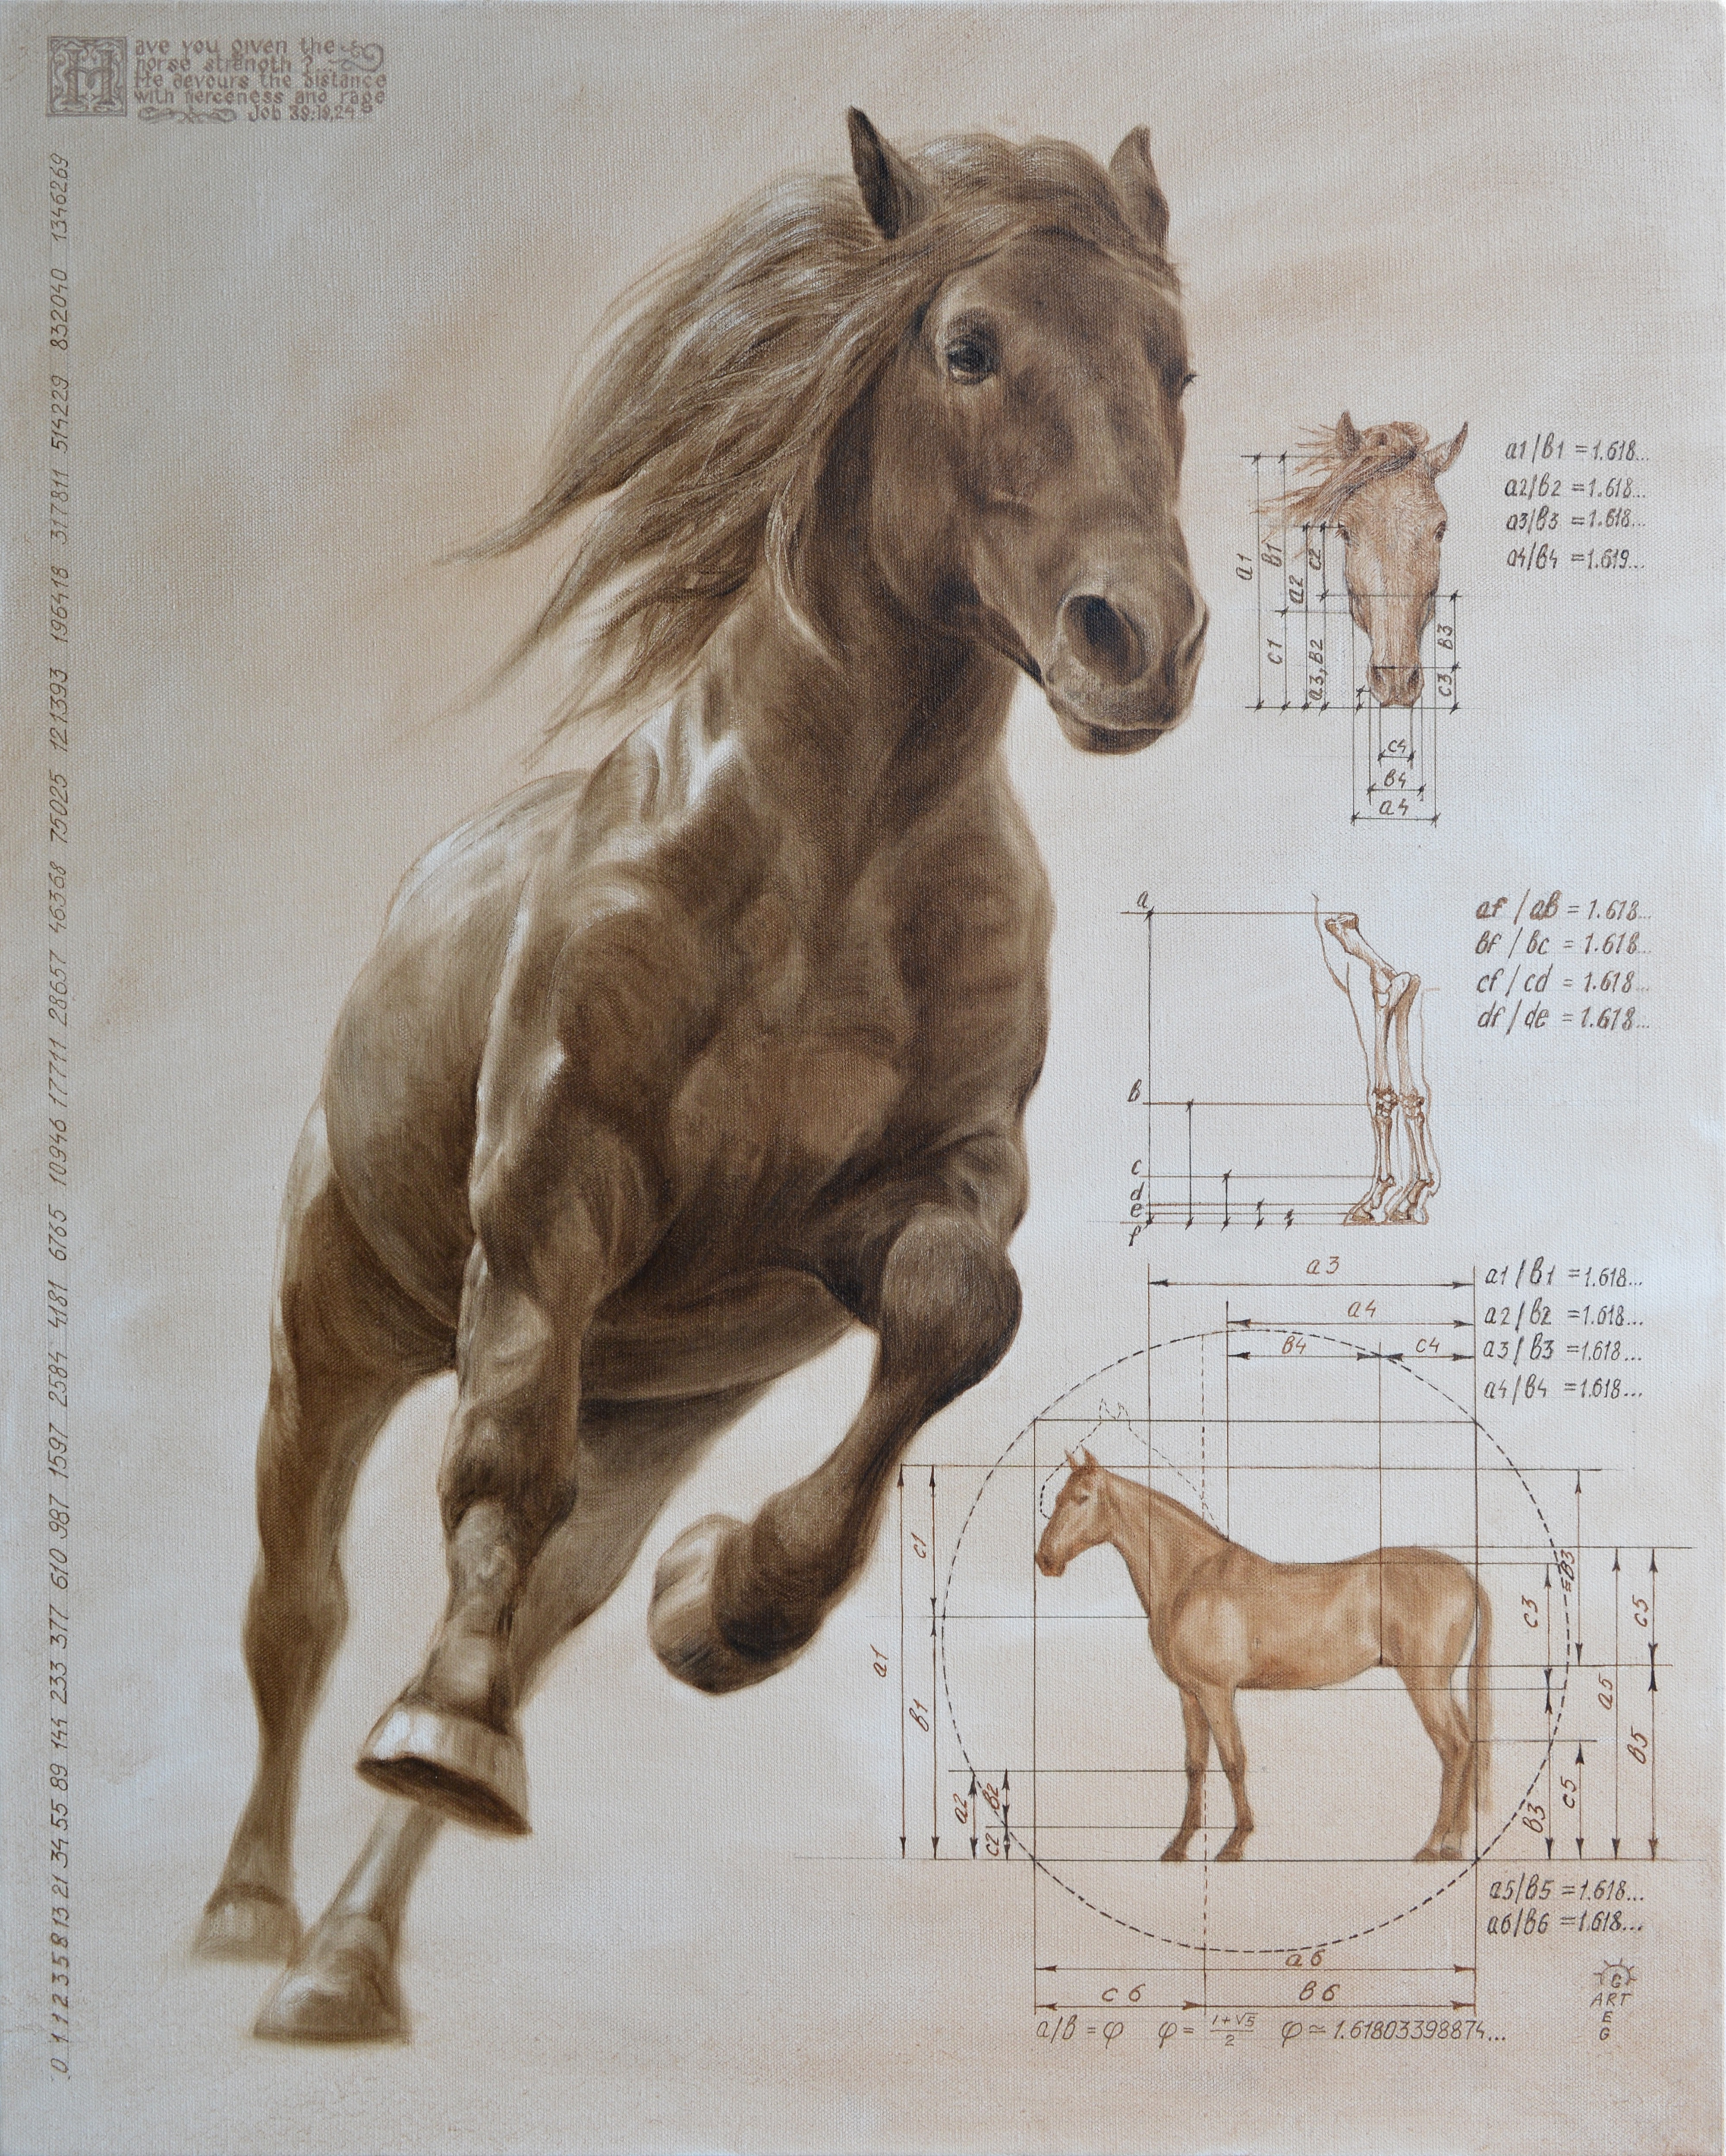 Intelligent Design. Stallion. To buy a print, click the link below